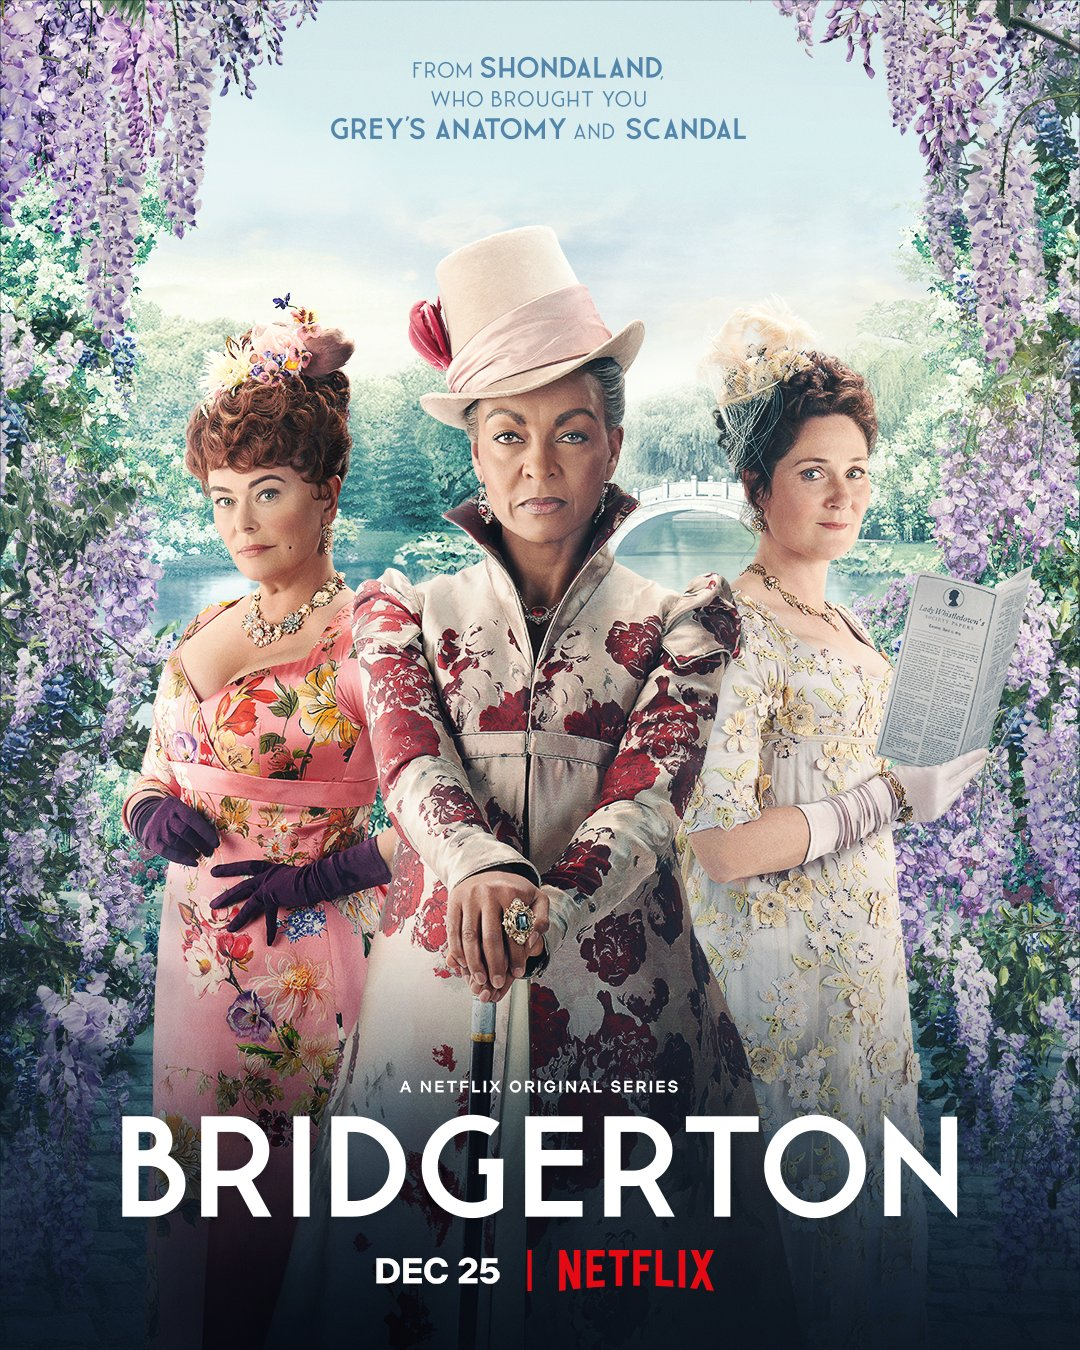 bridgerton-season-1-poster-bridgerton-netflix-series-43618653-1080-1350